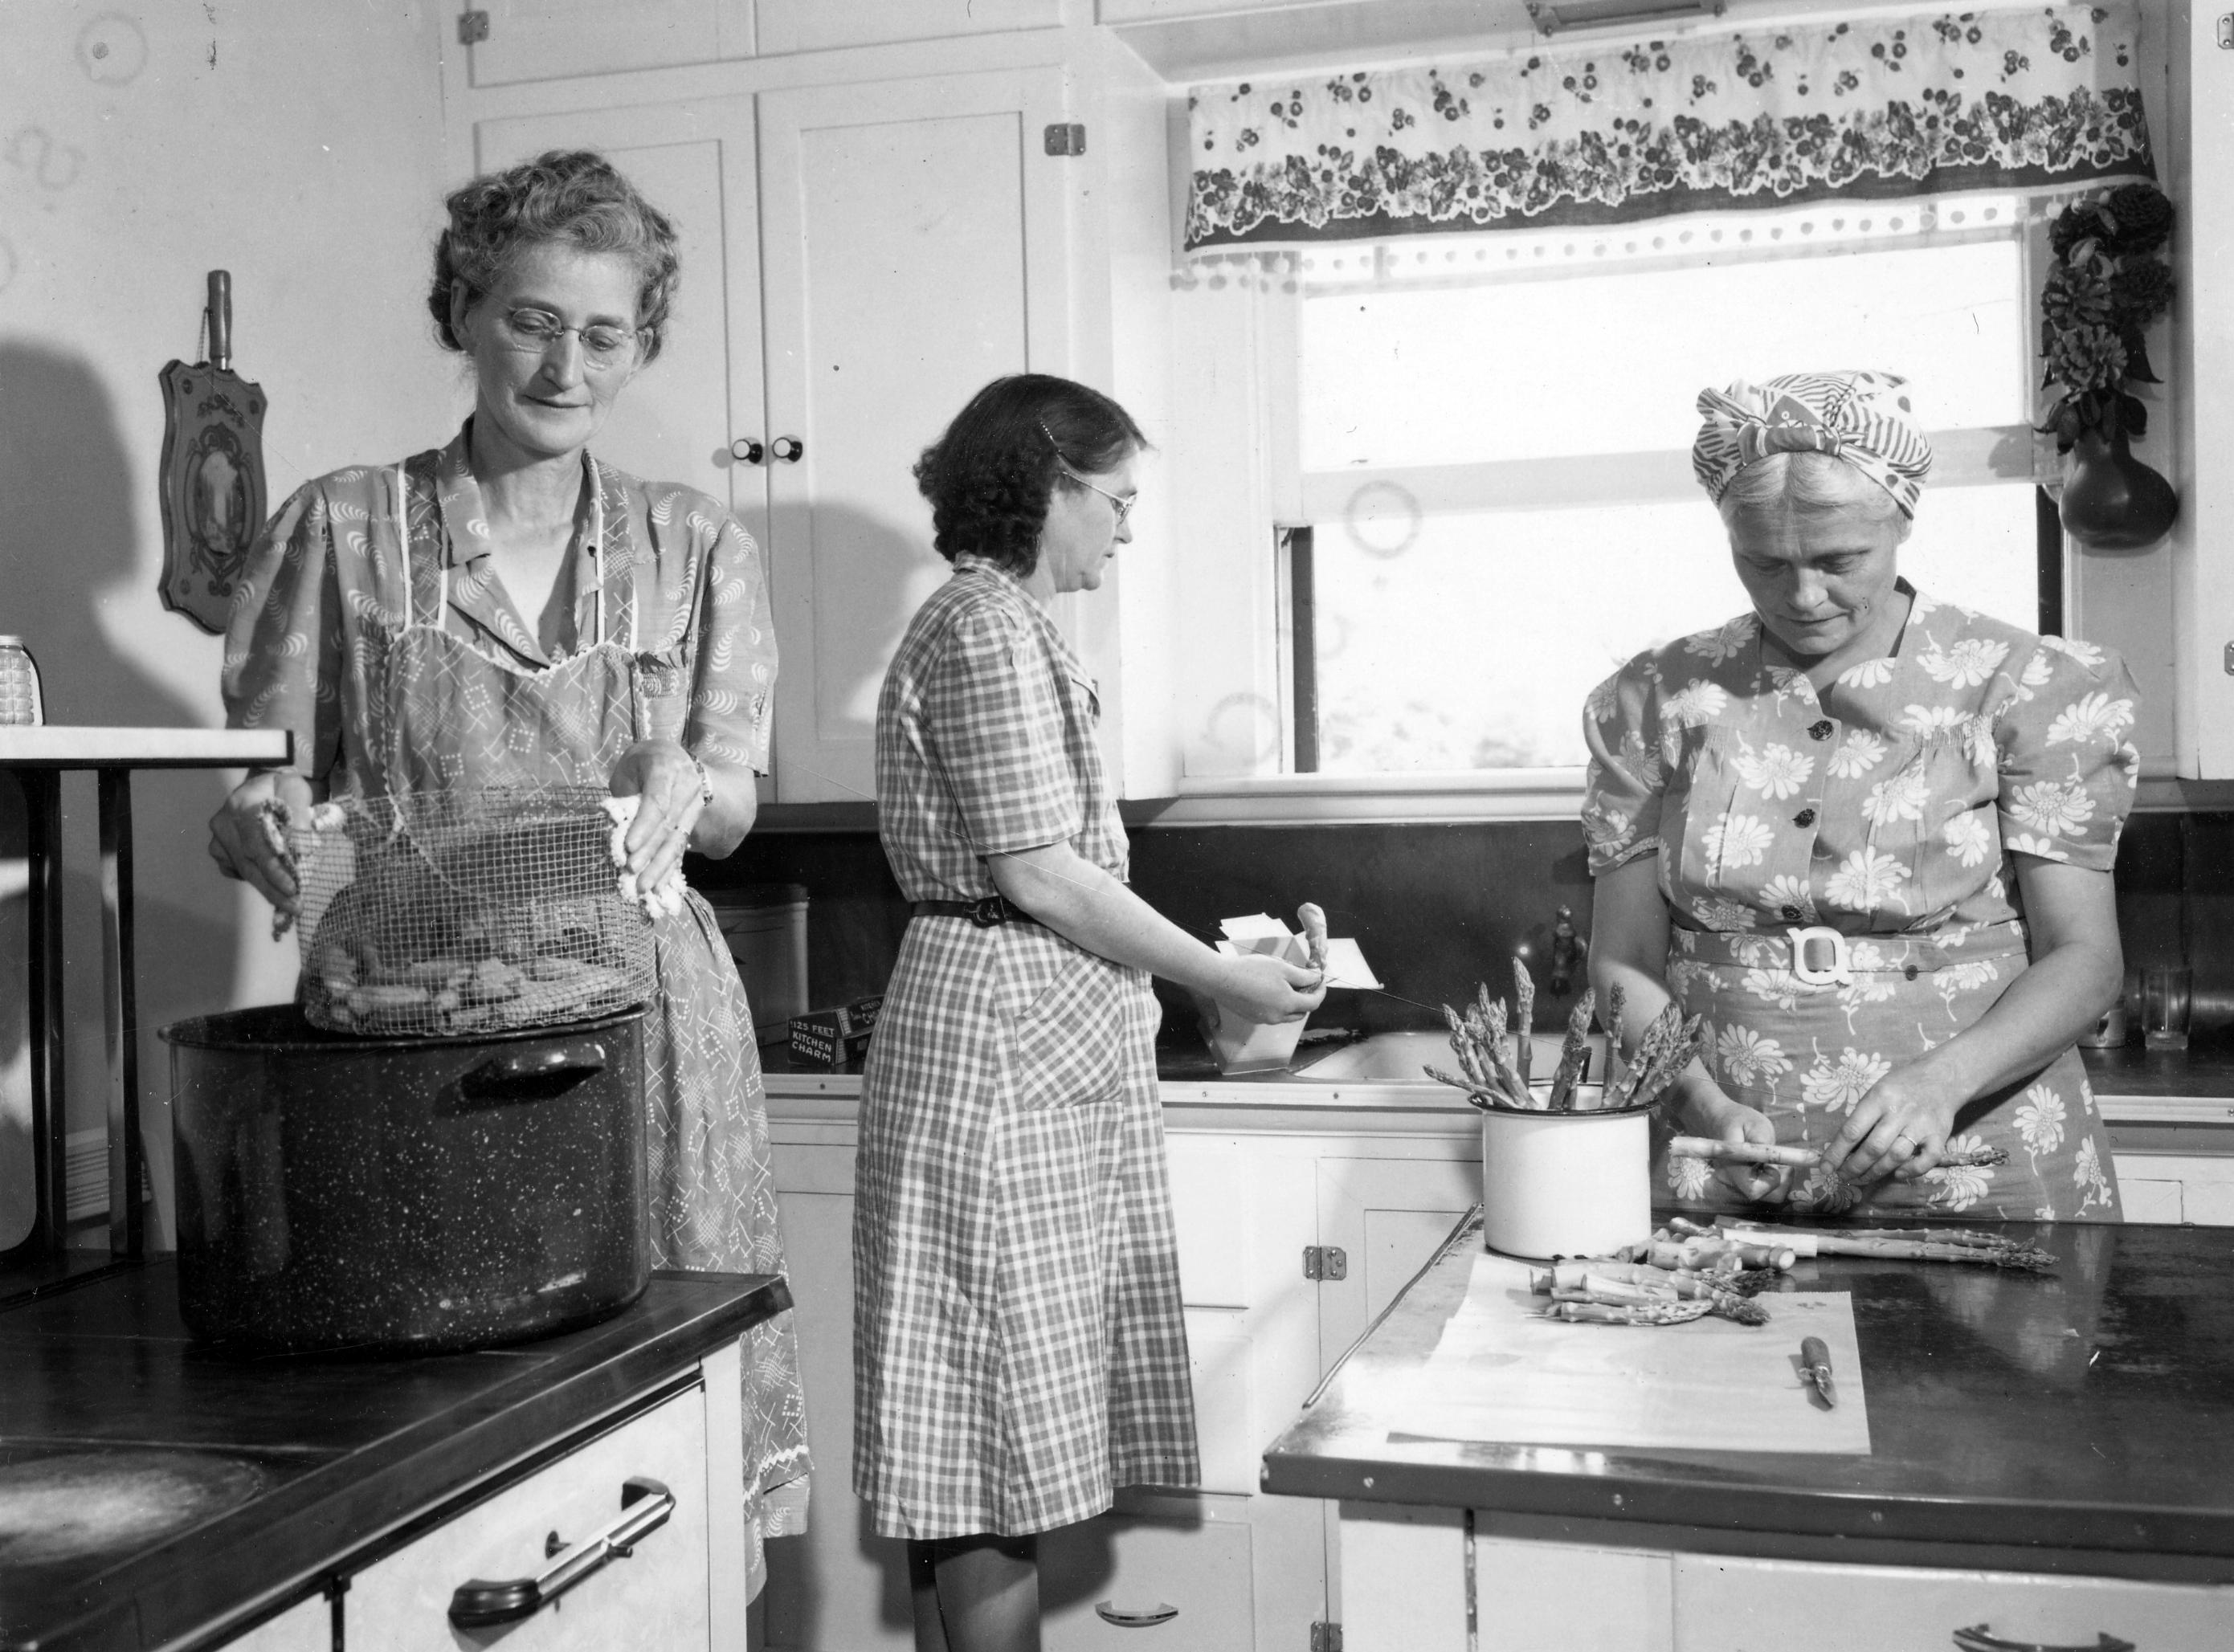 Vintage Schürze Küche File Women In Kitchen Preparing Food Circa 1945